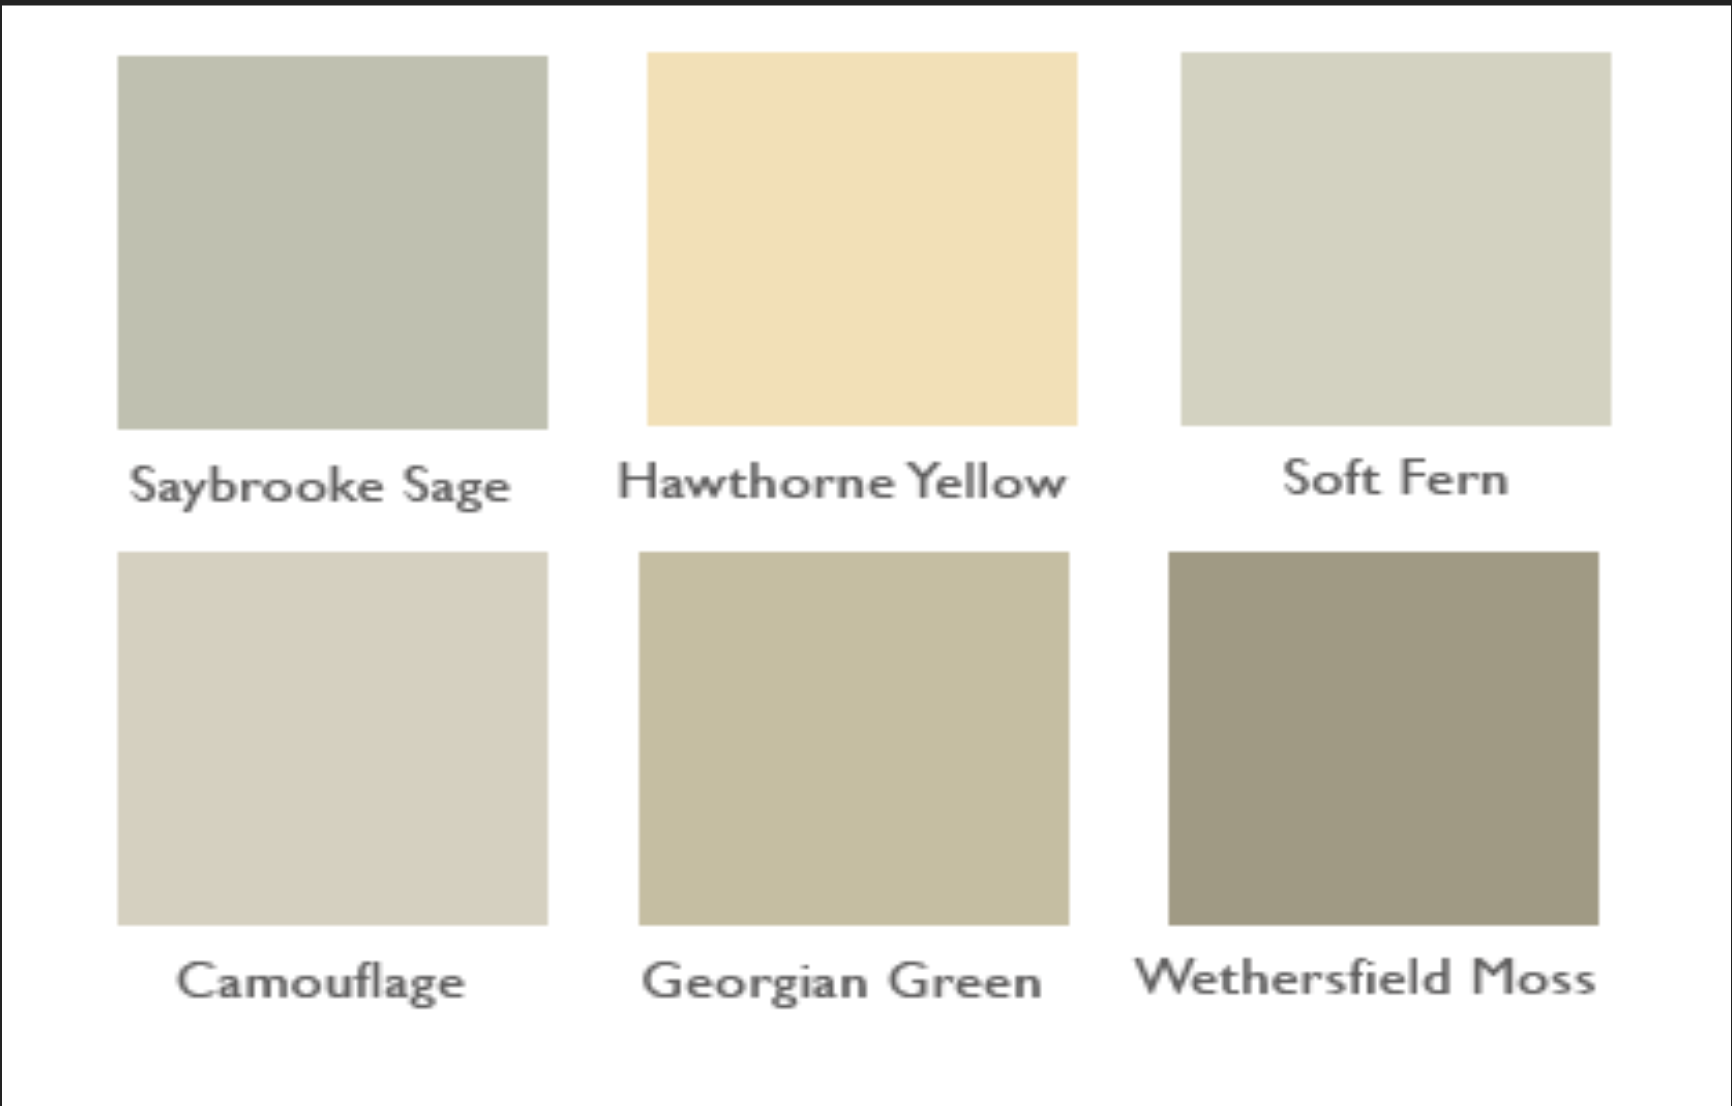 Benjamin Moore Paints Hawthorne Yellow And Soft Fern Are Stunning